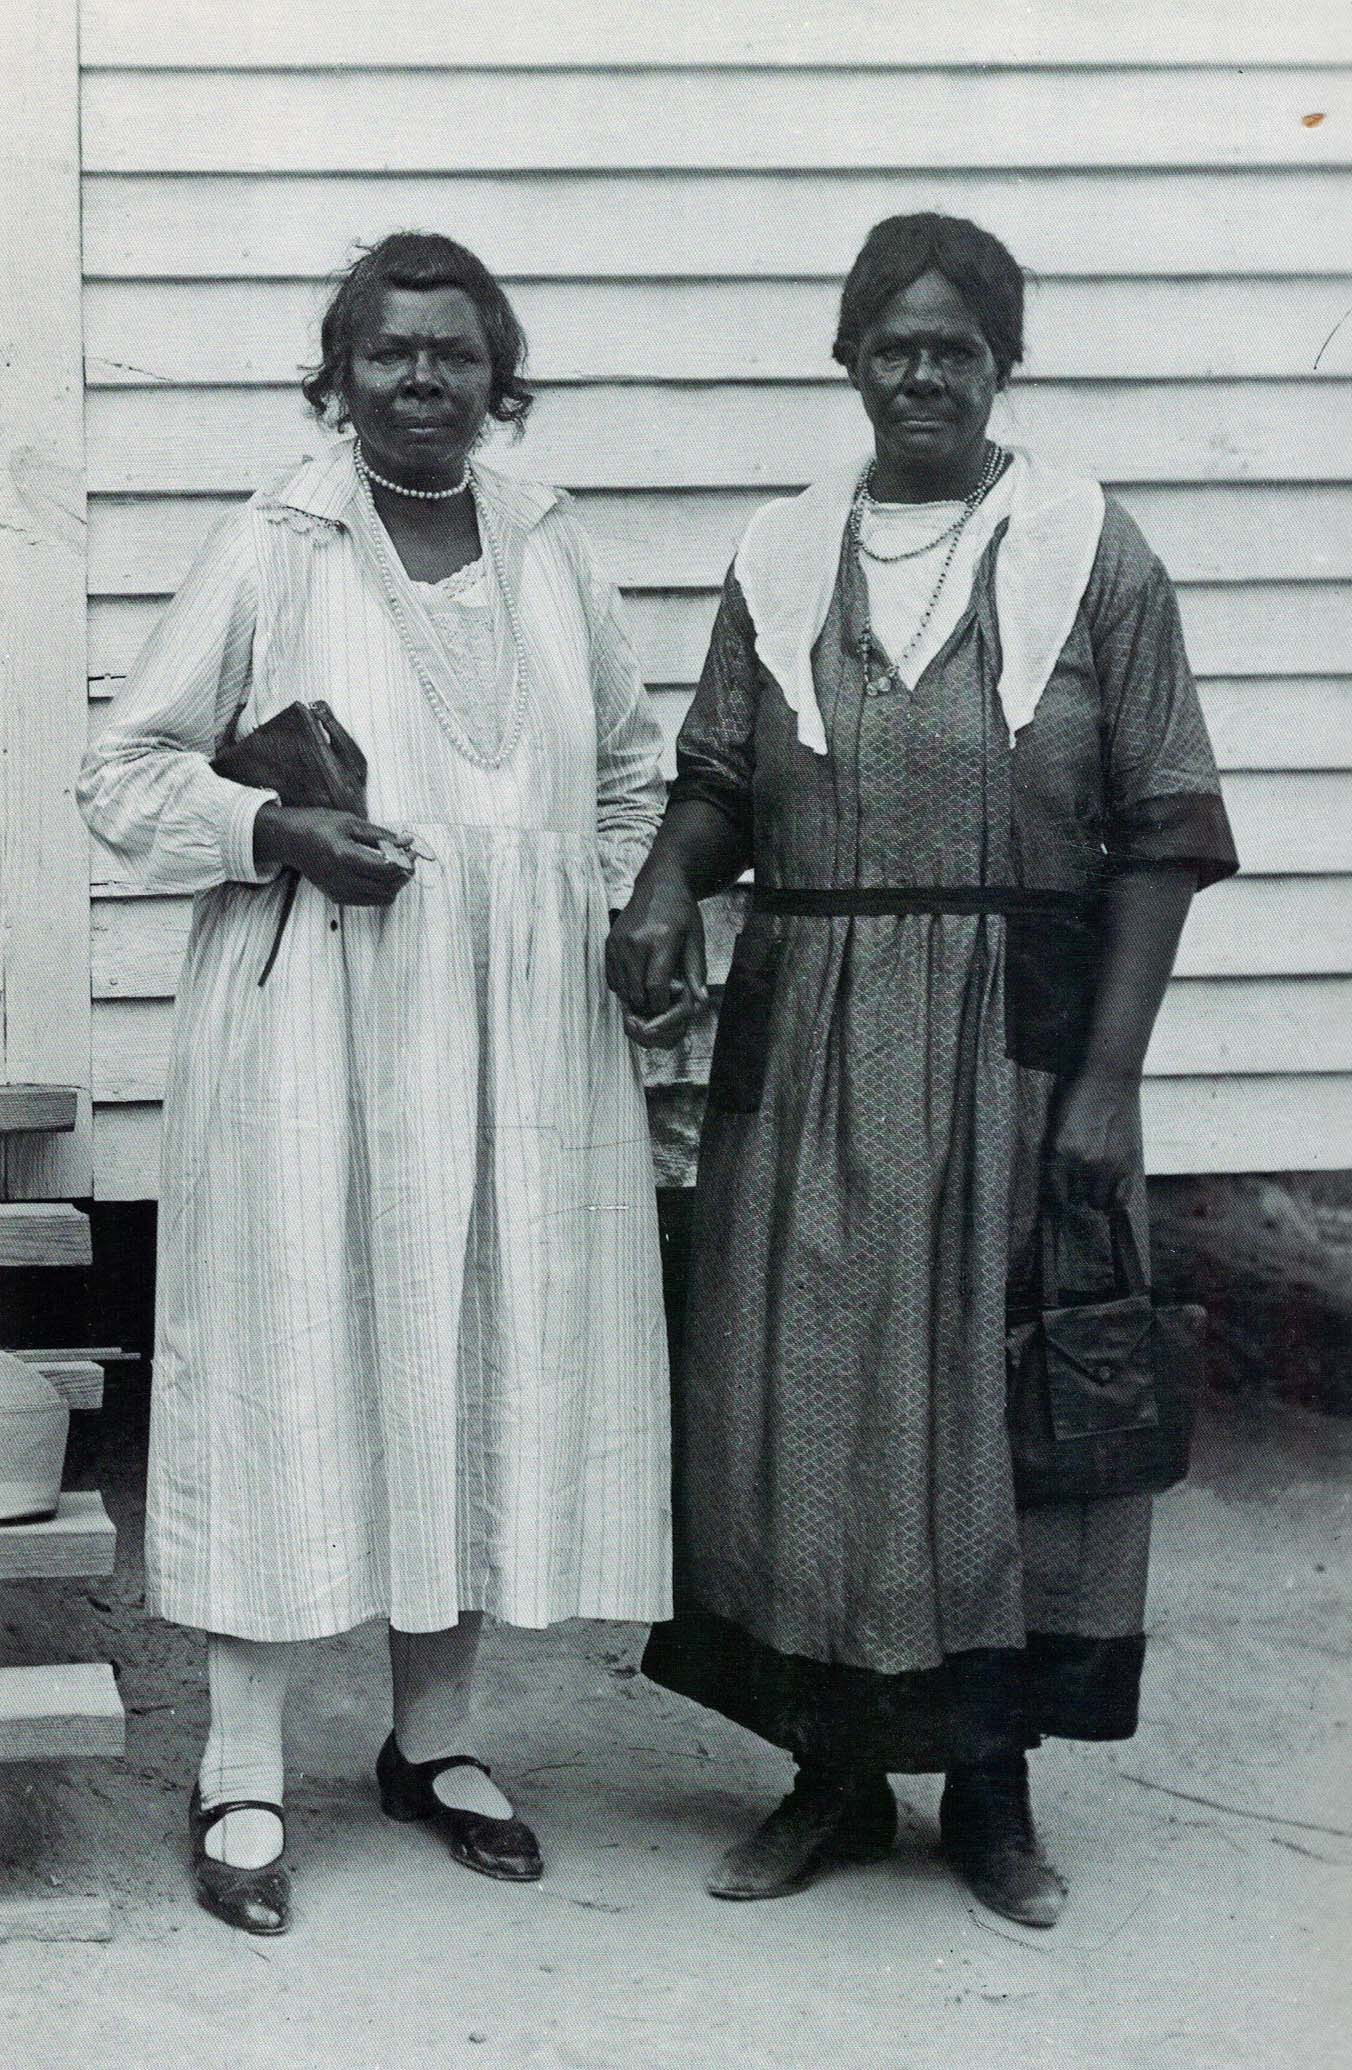 Unidentified rural churchgoers, 1920s